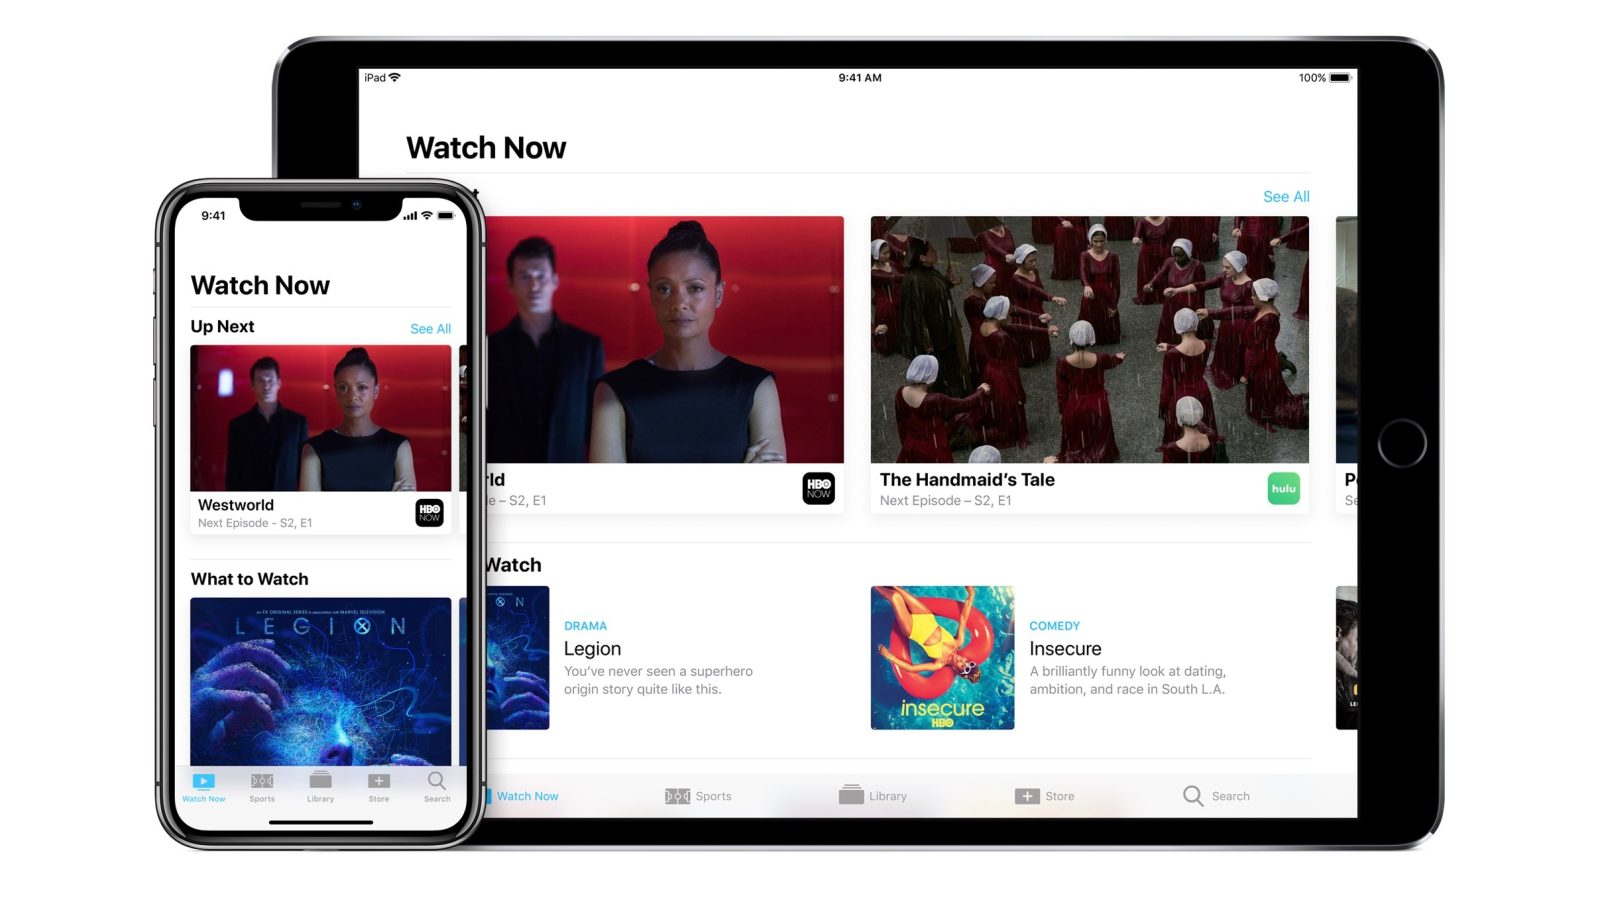 Apple's original content video service reportedly launching